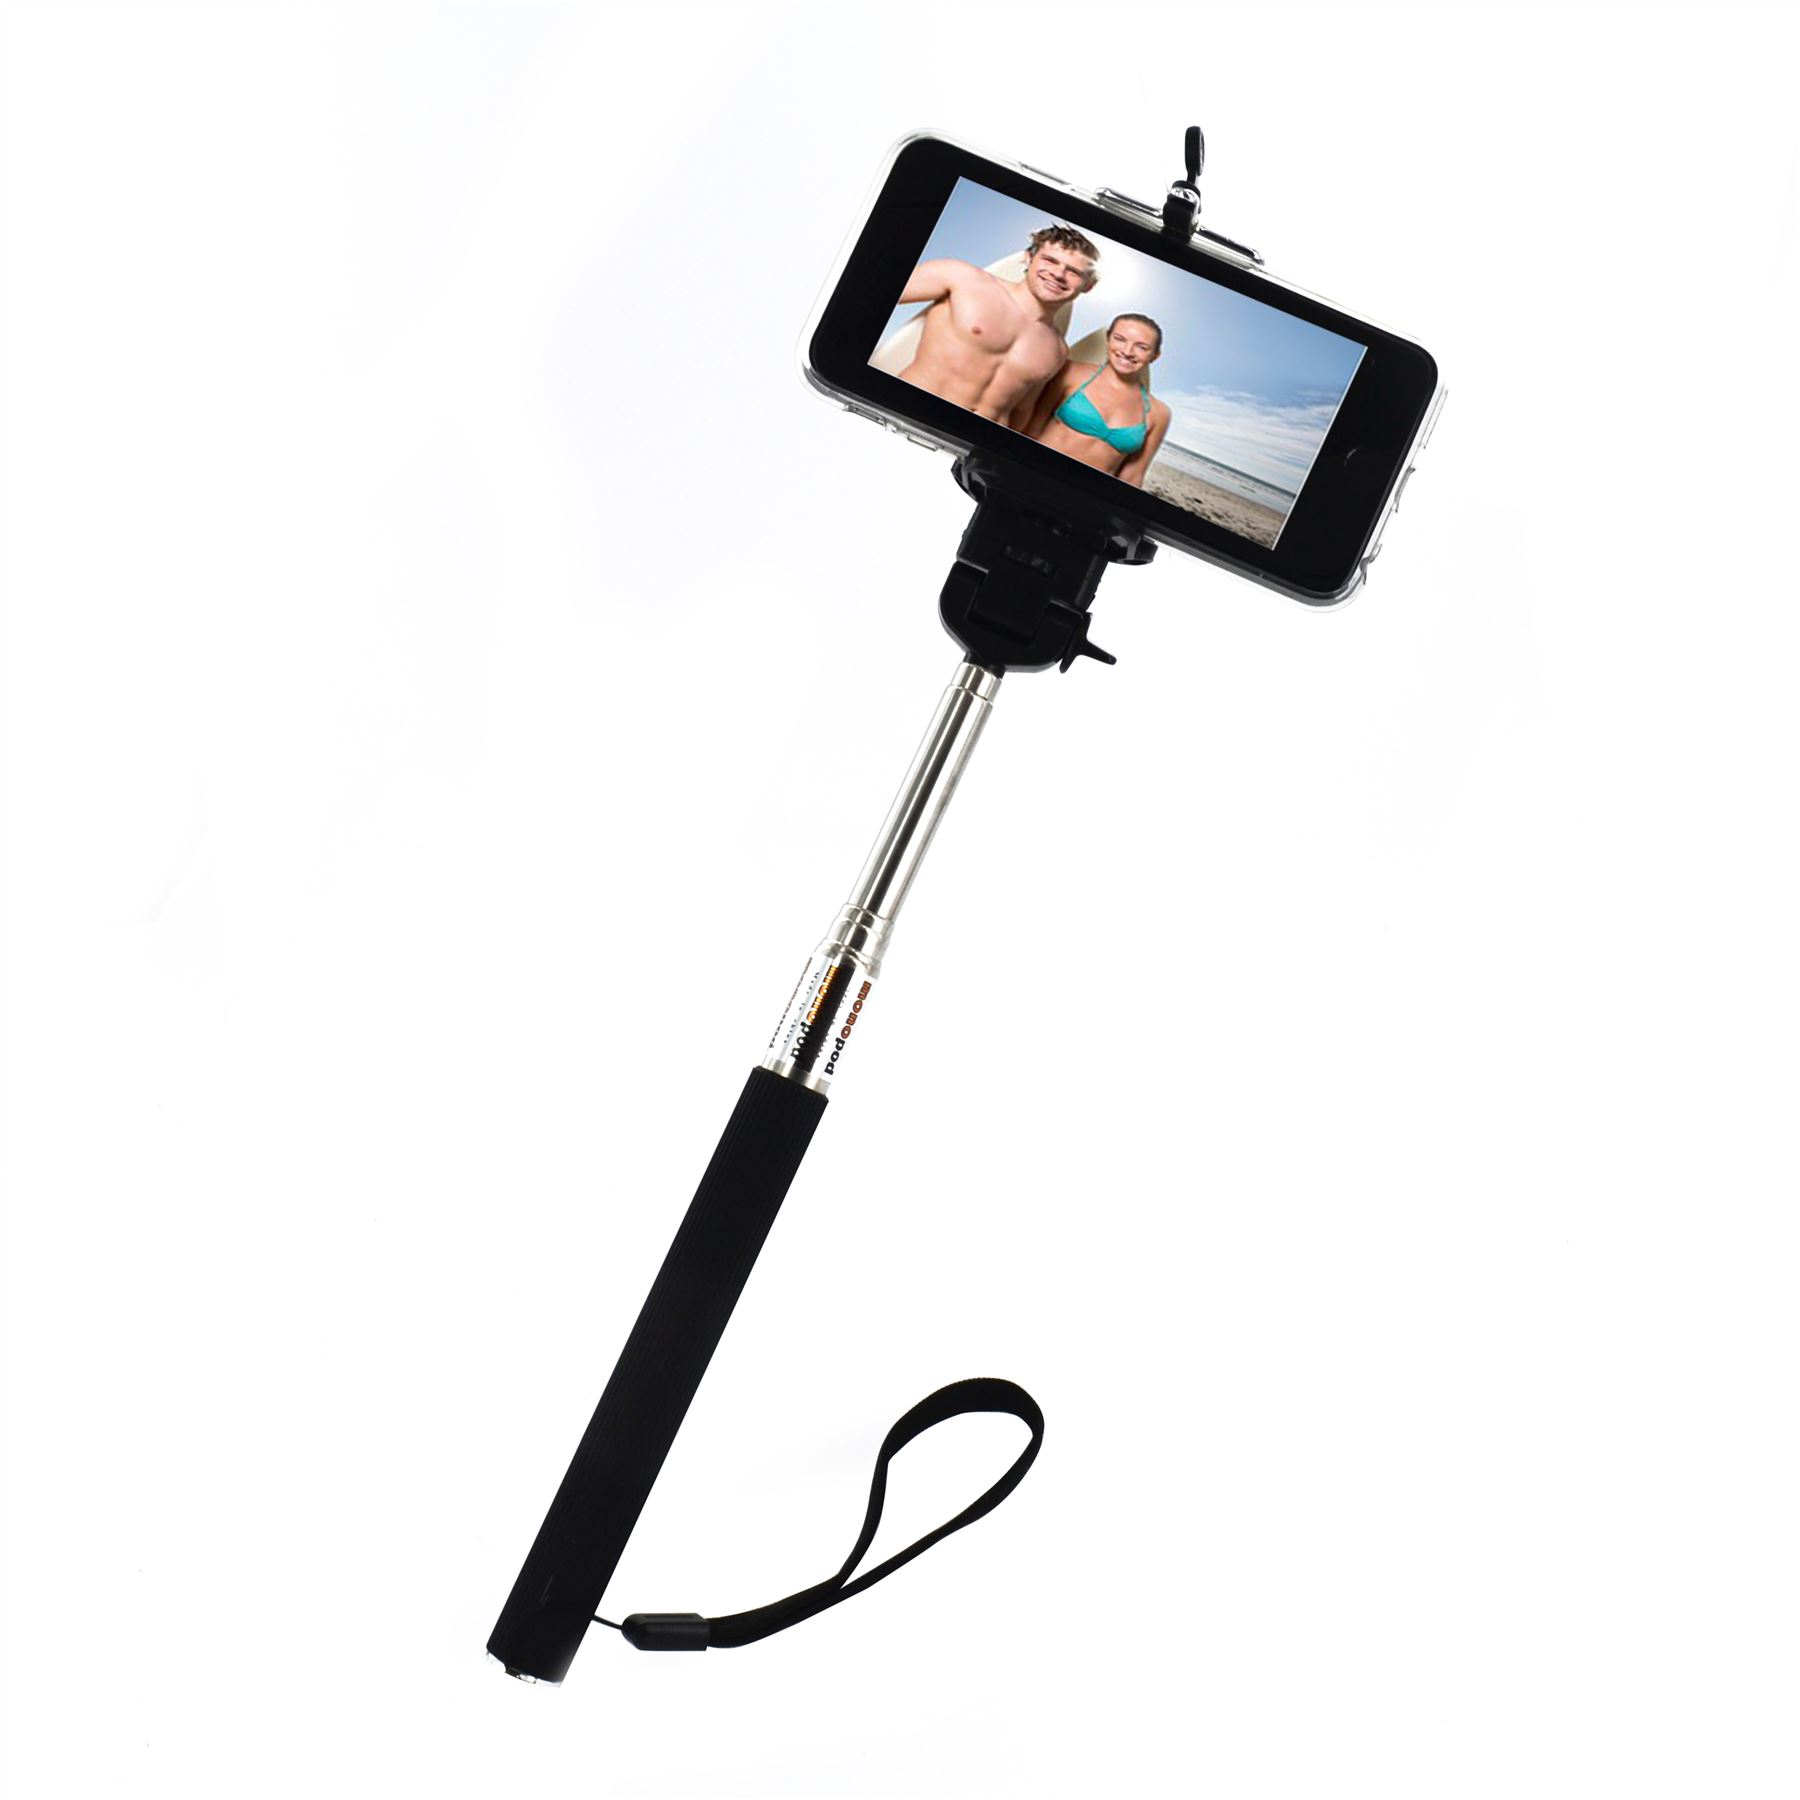 monopod telescopic selfie stick camera mobile smart phone iphone handle holder ebay. Black Bedroom Furniture Sets. Home Design Ideas